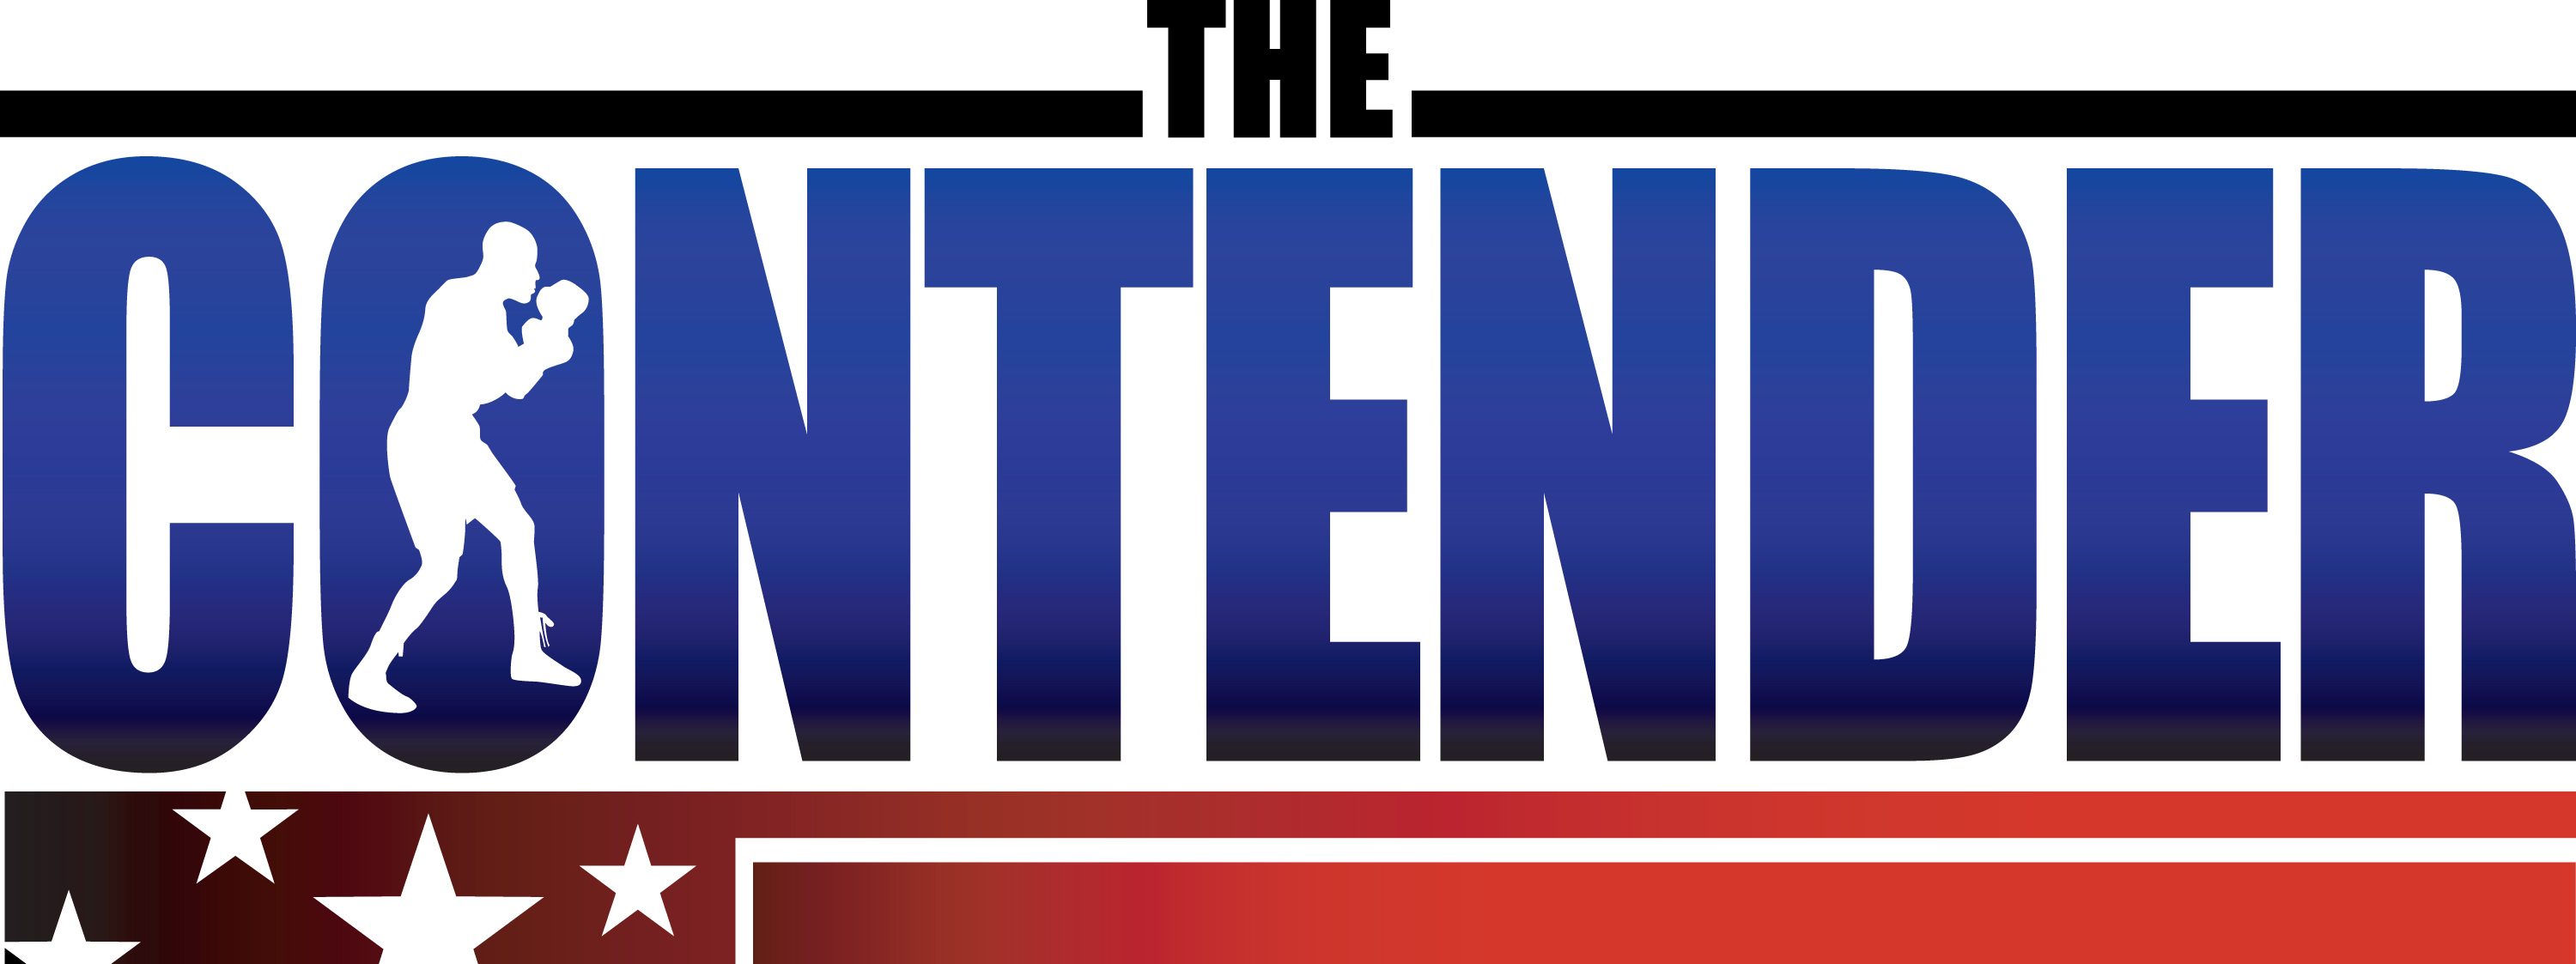 The Contender [TV Series]